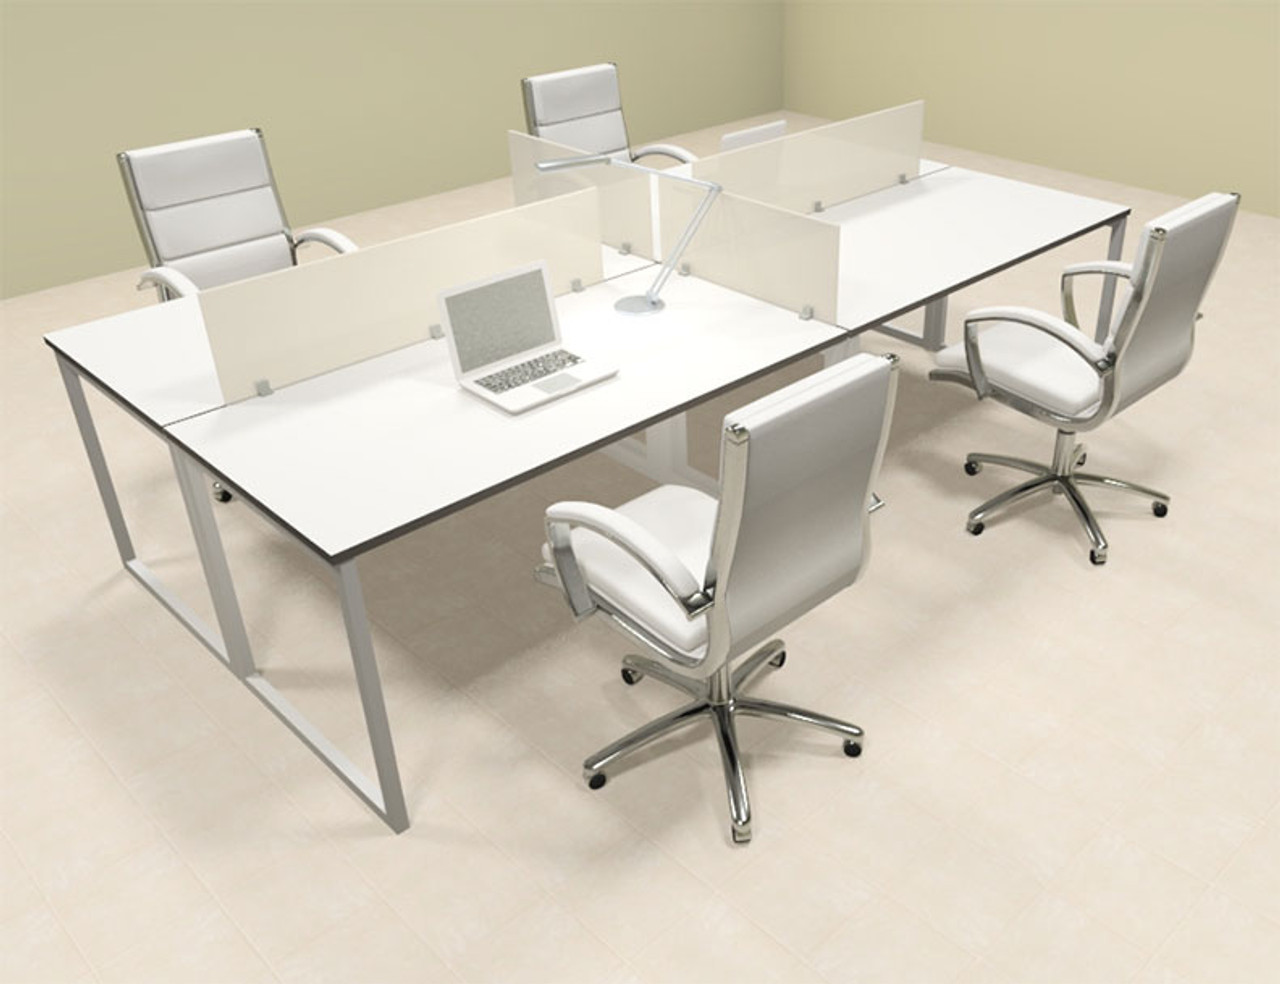 Four Person Modern Acrylic Divider Office Workstation, #AL-OPN-FP7